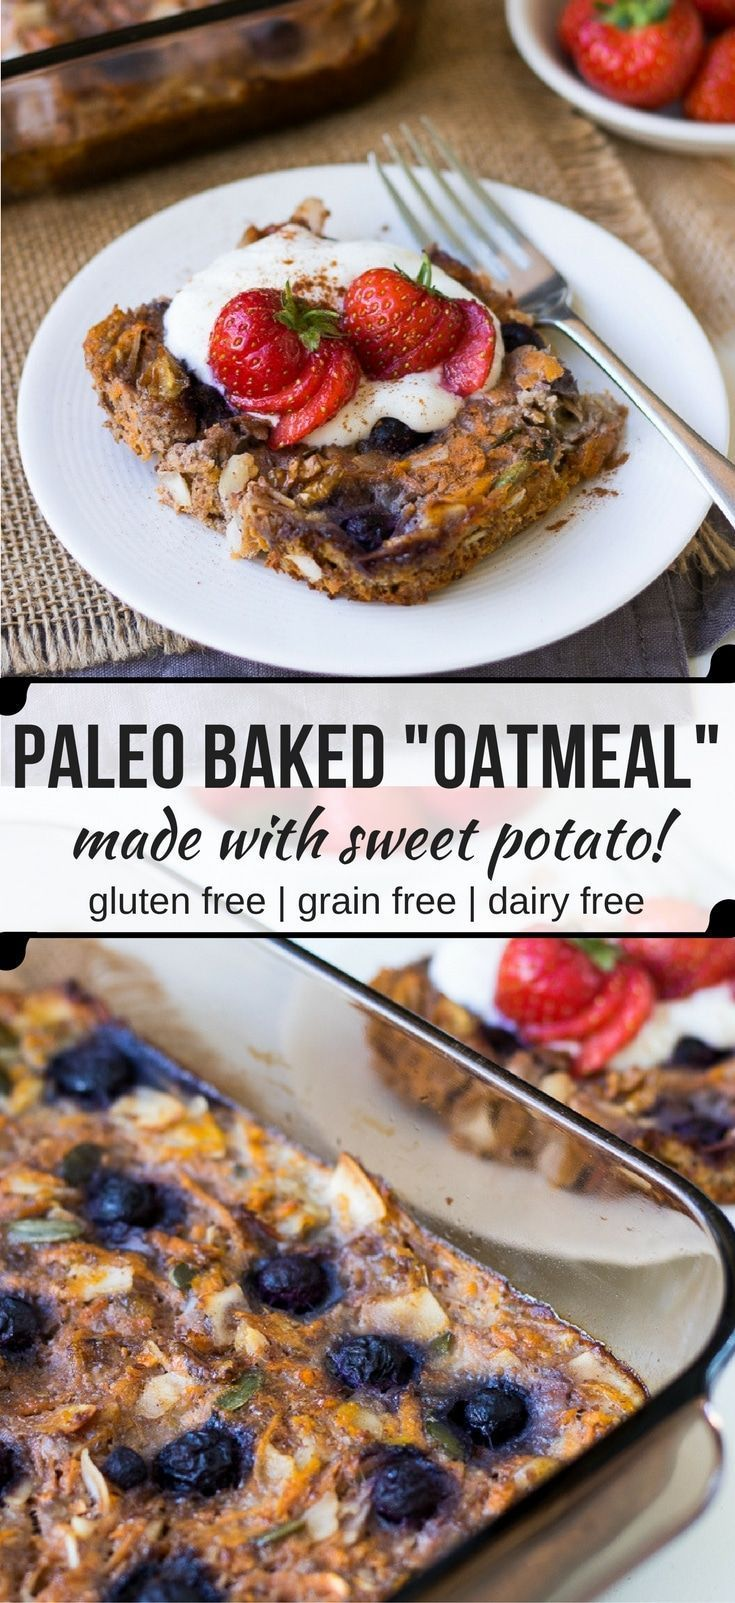 "This easy, healthy paleo baked oatmeal or ""noatmeal"" is a grain free twist on breakfast using sweet potato, flax, coconut and eggs. (gluten free, dairy free)"